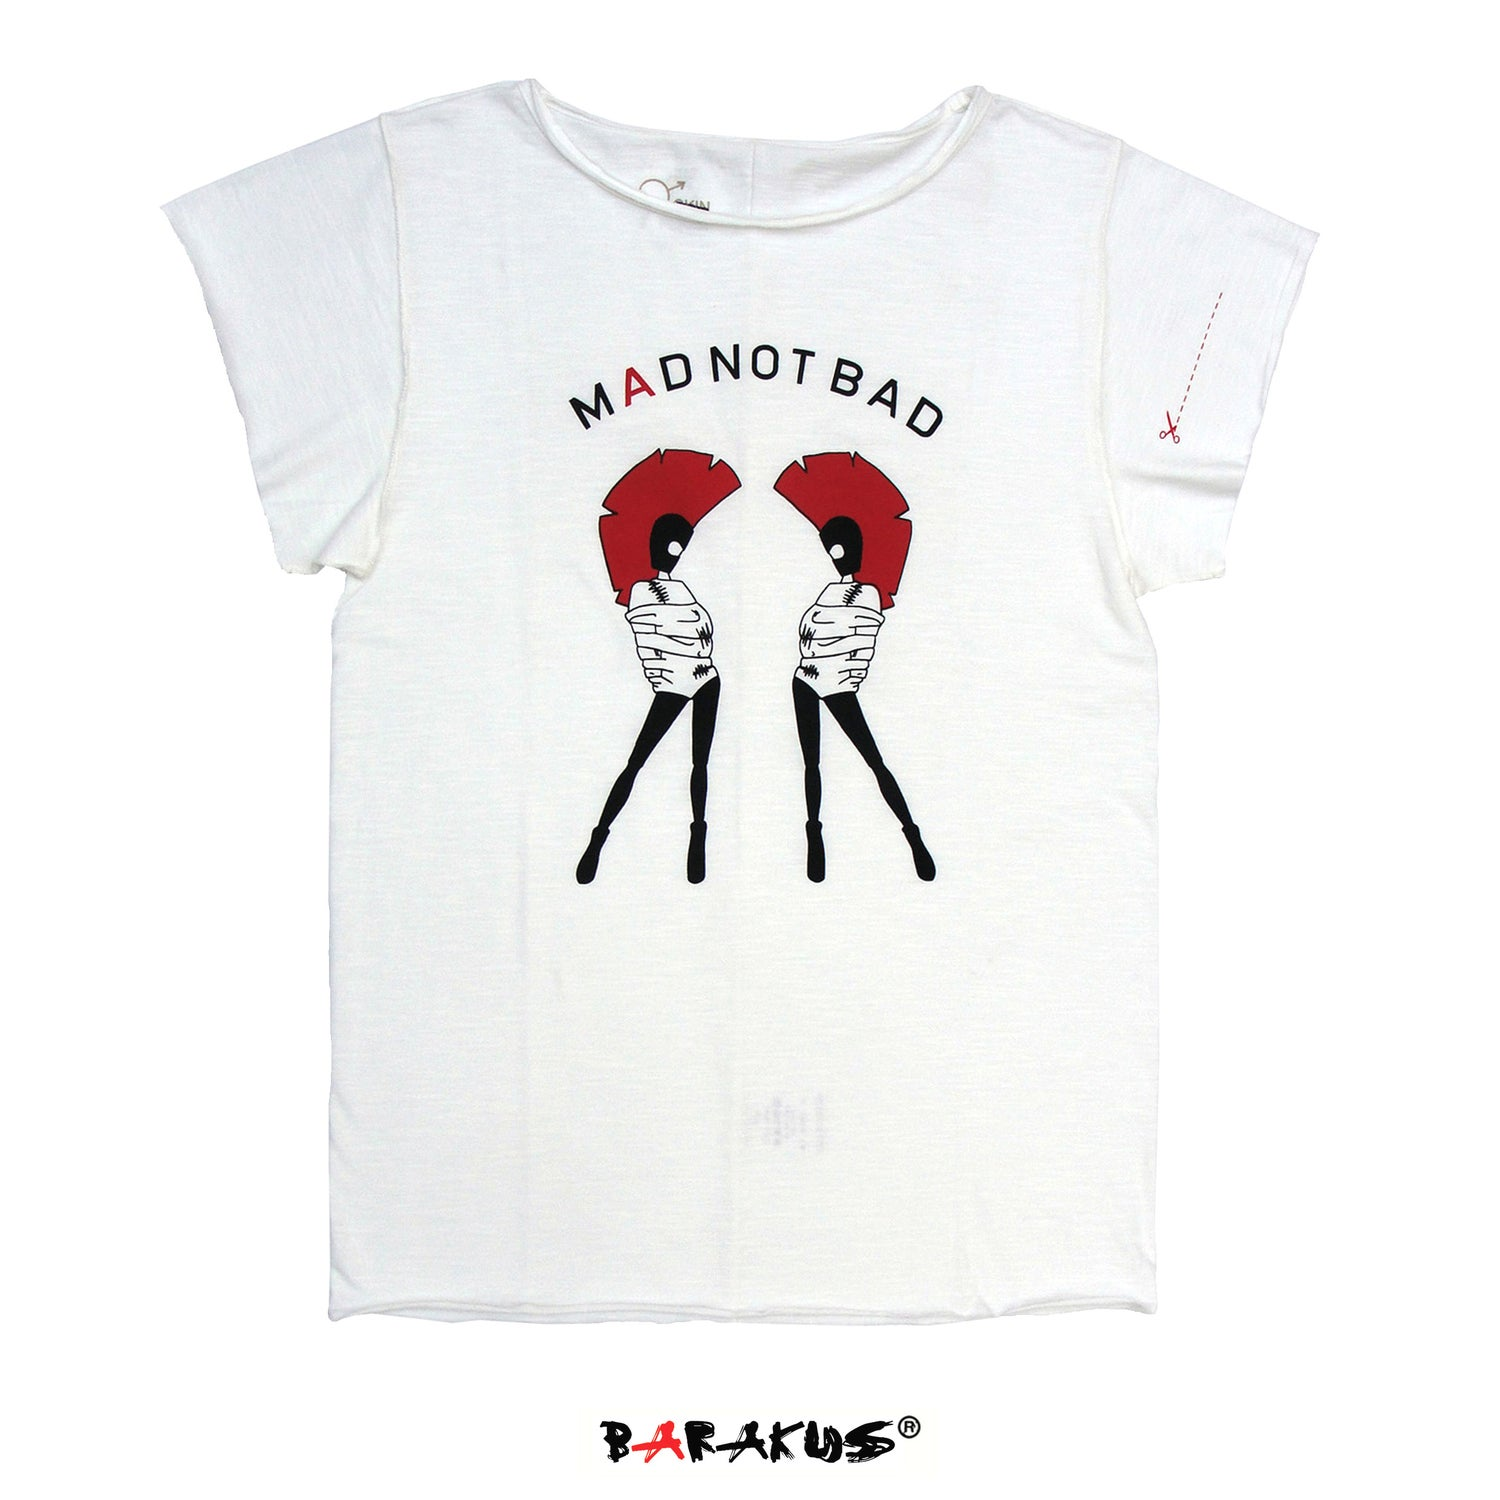 Image of MAD NOT BAD T-SHIRT By BARAKUS